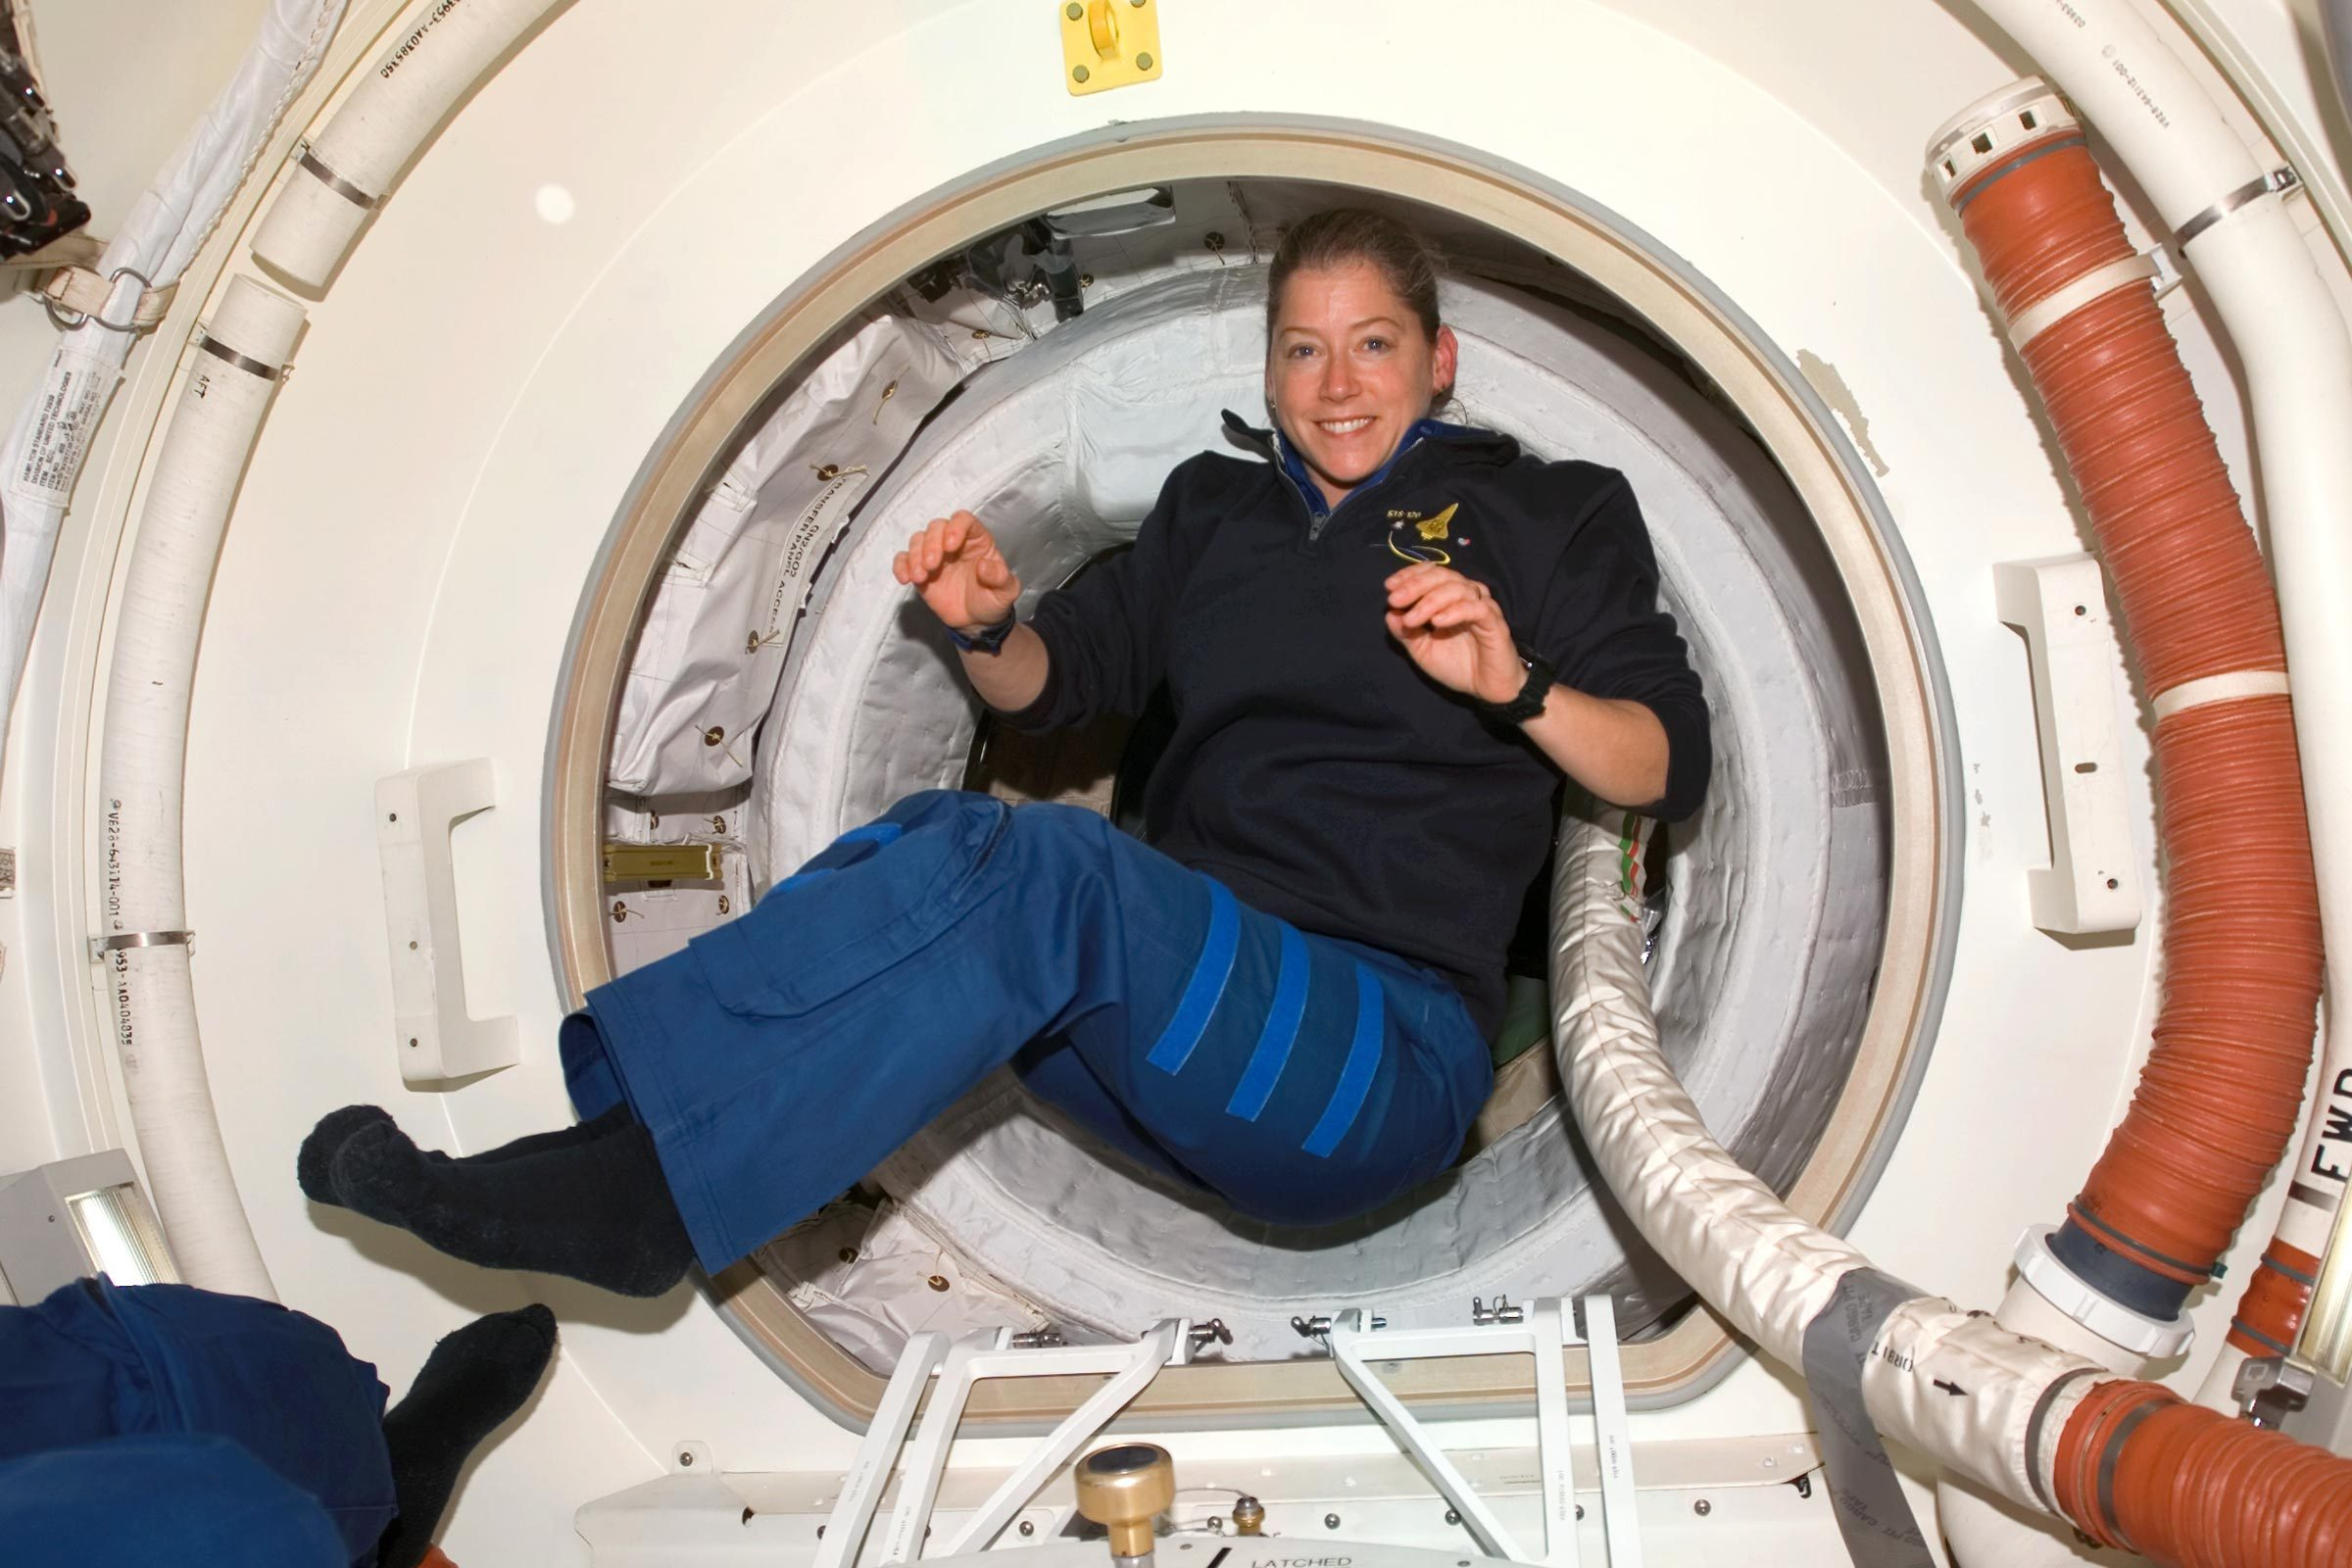 Astronaut Pam Melroy, STS-120 commander, floats in the Orbiter Docking Compartment (ODS) after hatch opening between the International Space Station and Space Shuttle Discovery.